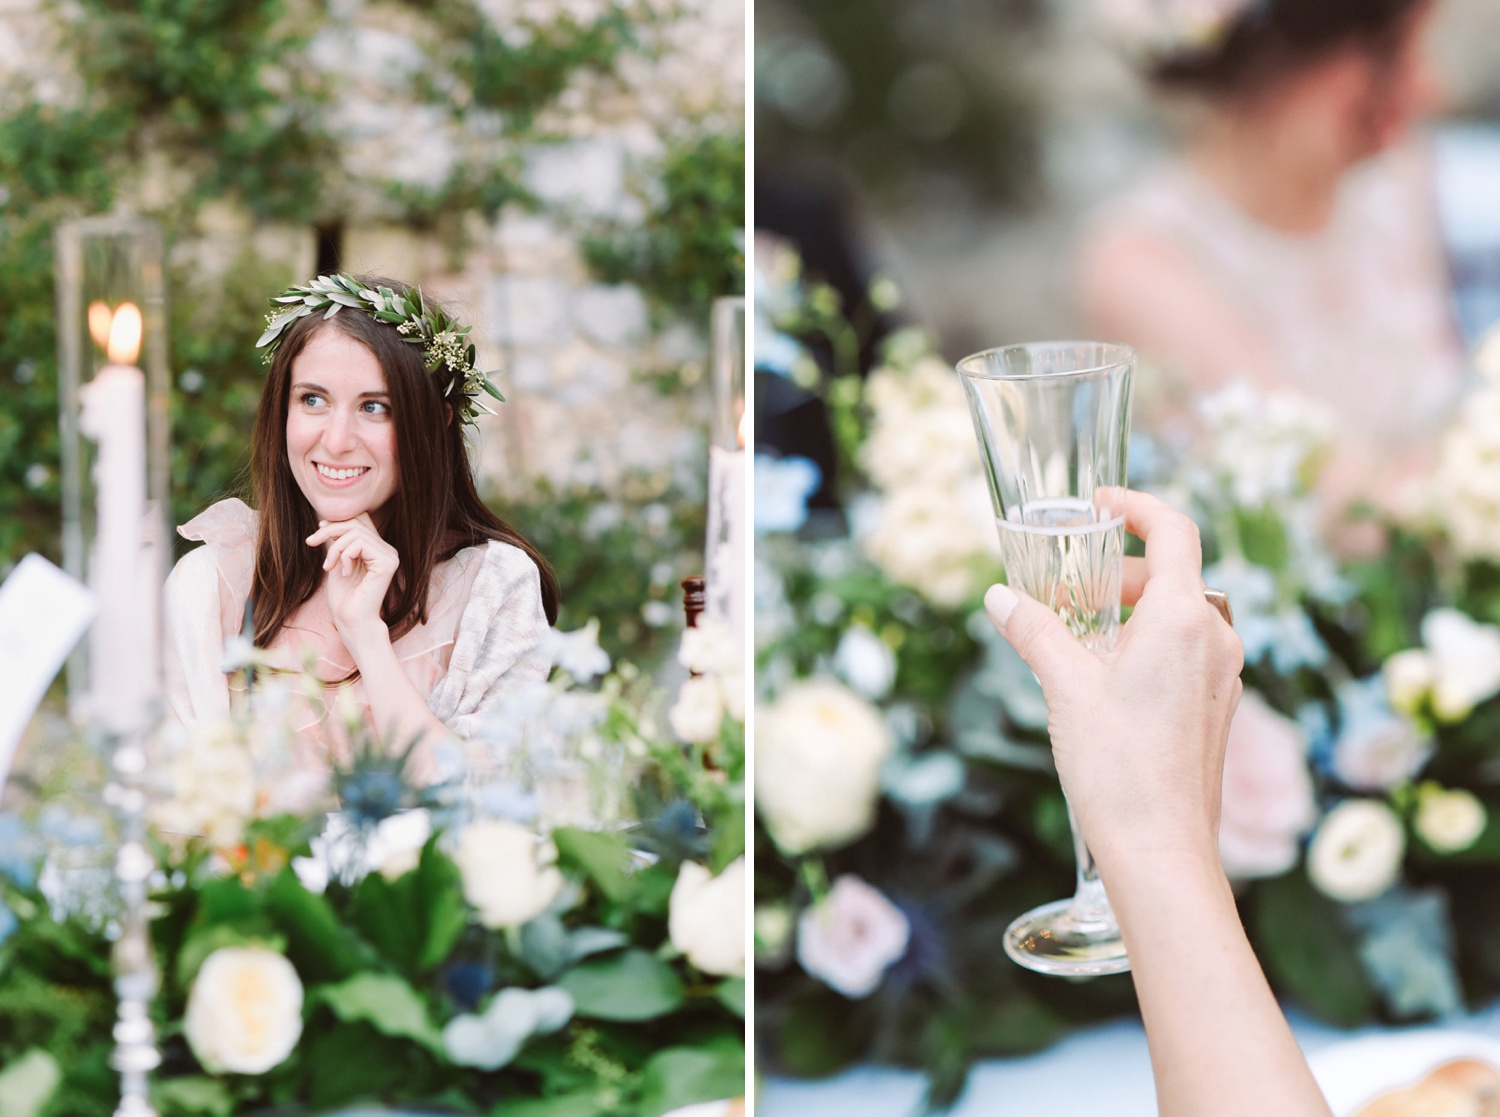 landvphotography_wedding_photographer_tuscany_0085.jpg